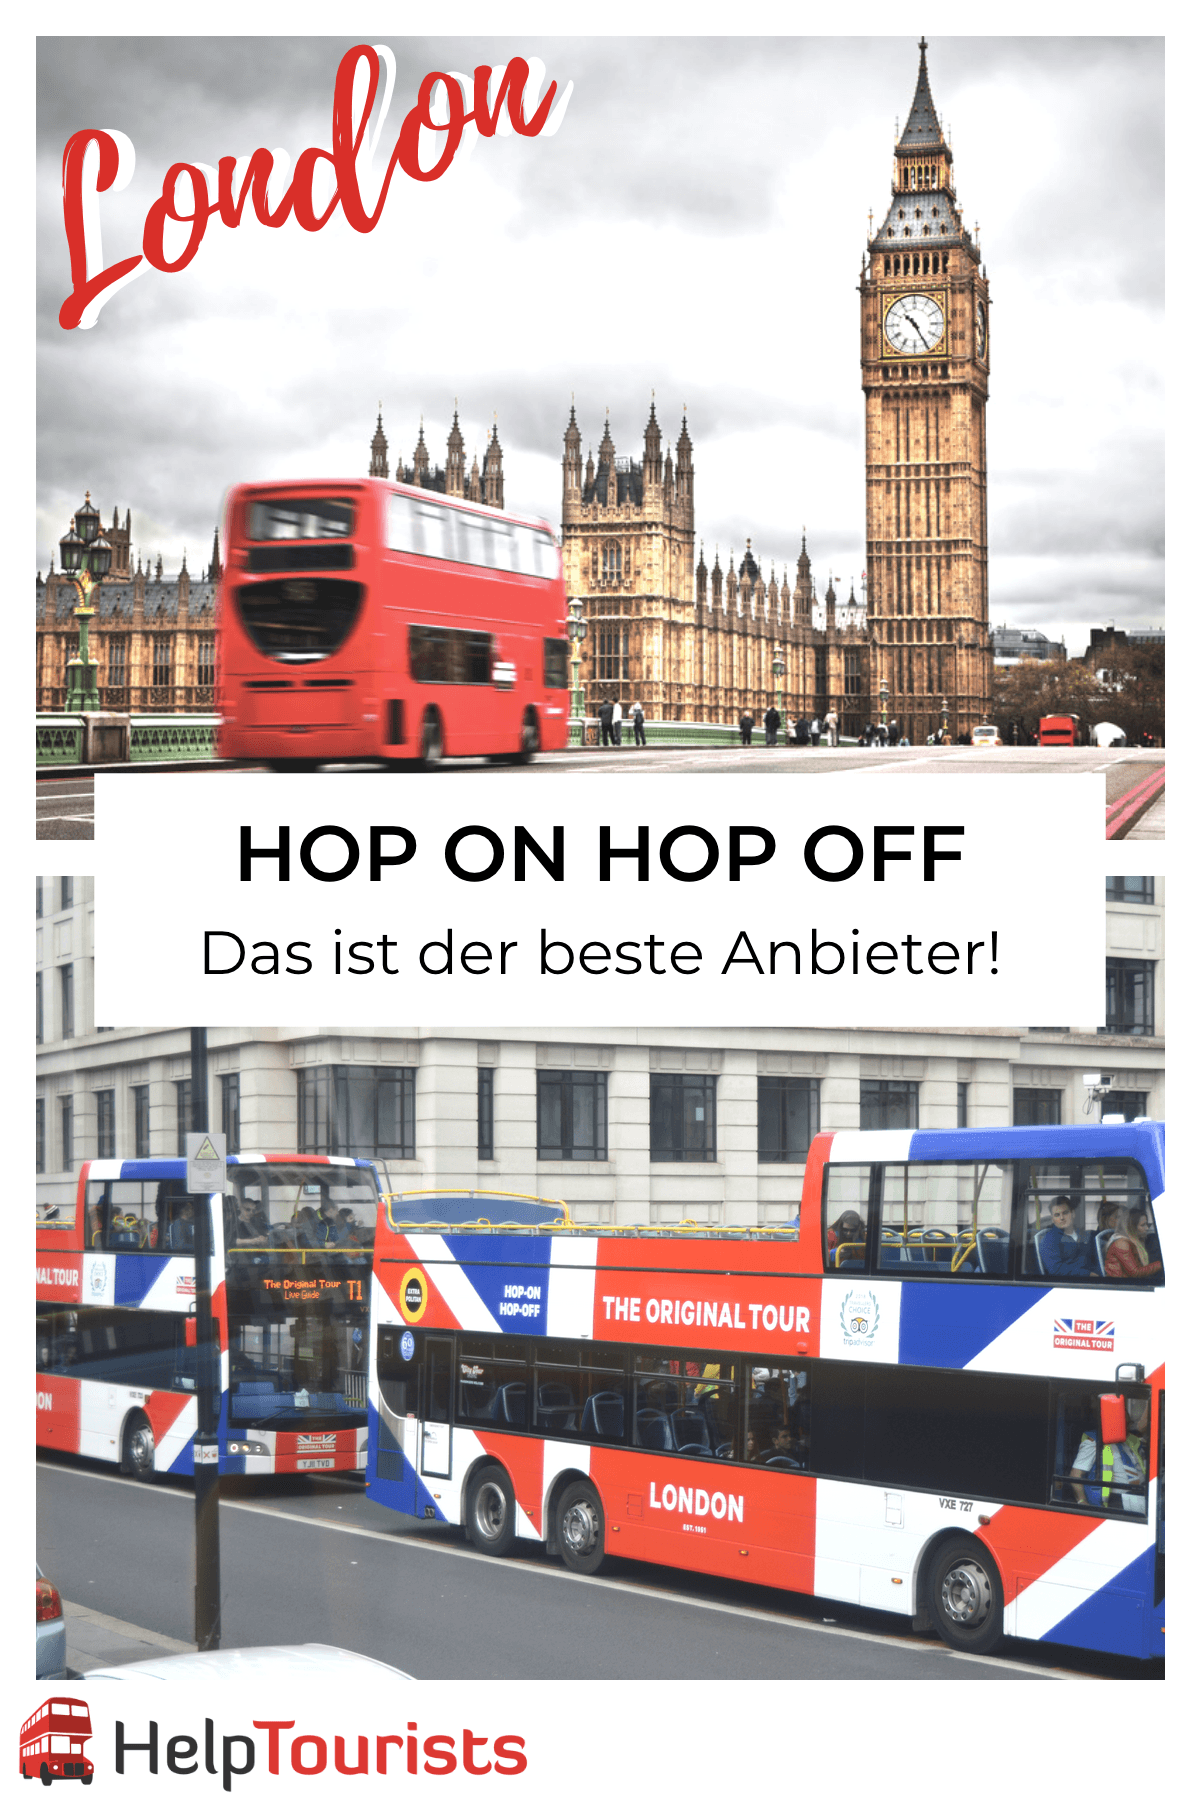 Hop on hop off London